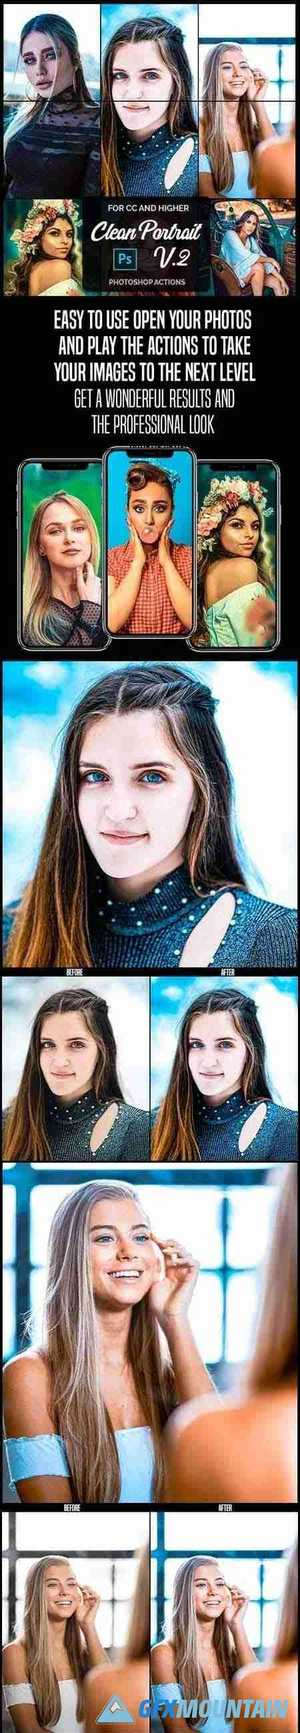 Clean Portrait V.2 - Professional Photoshop Actions 26399654